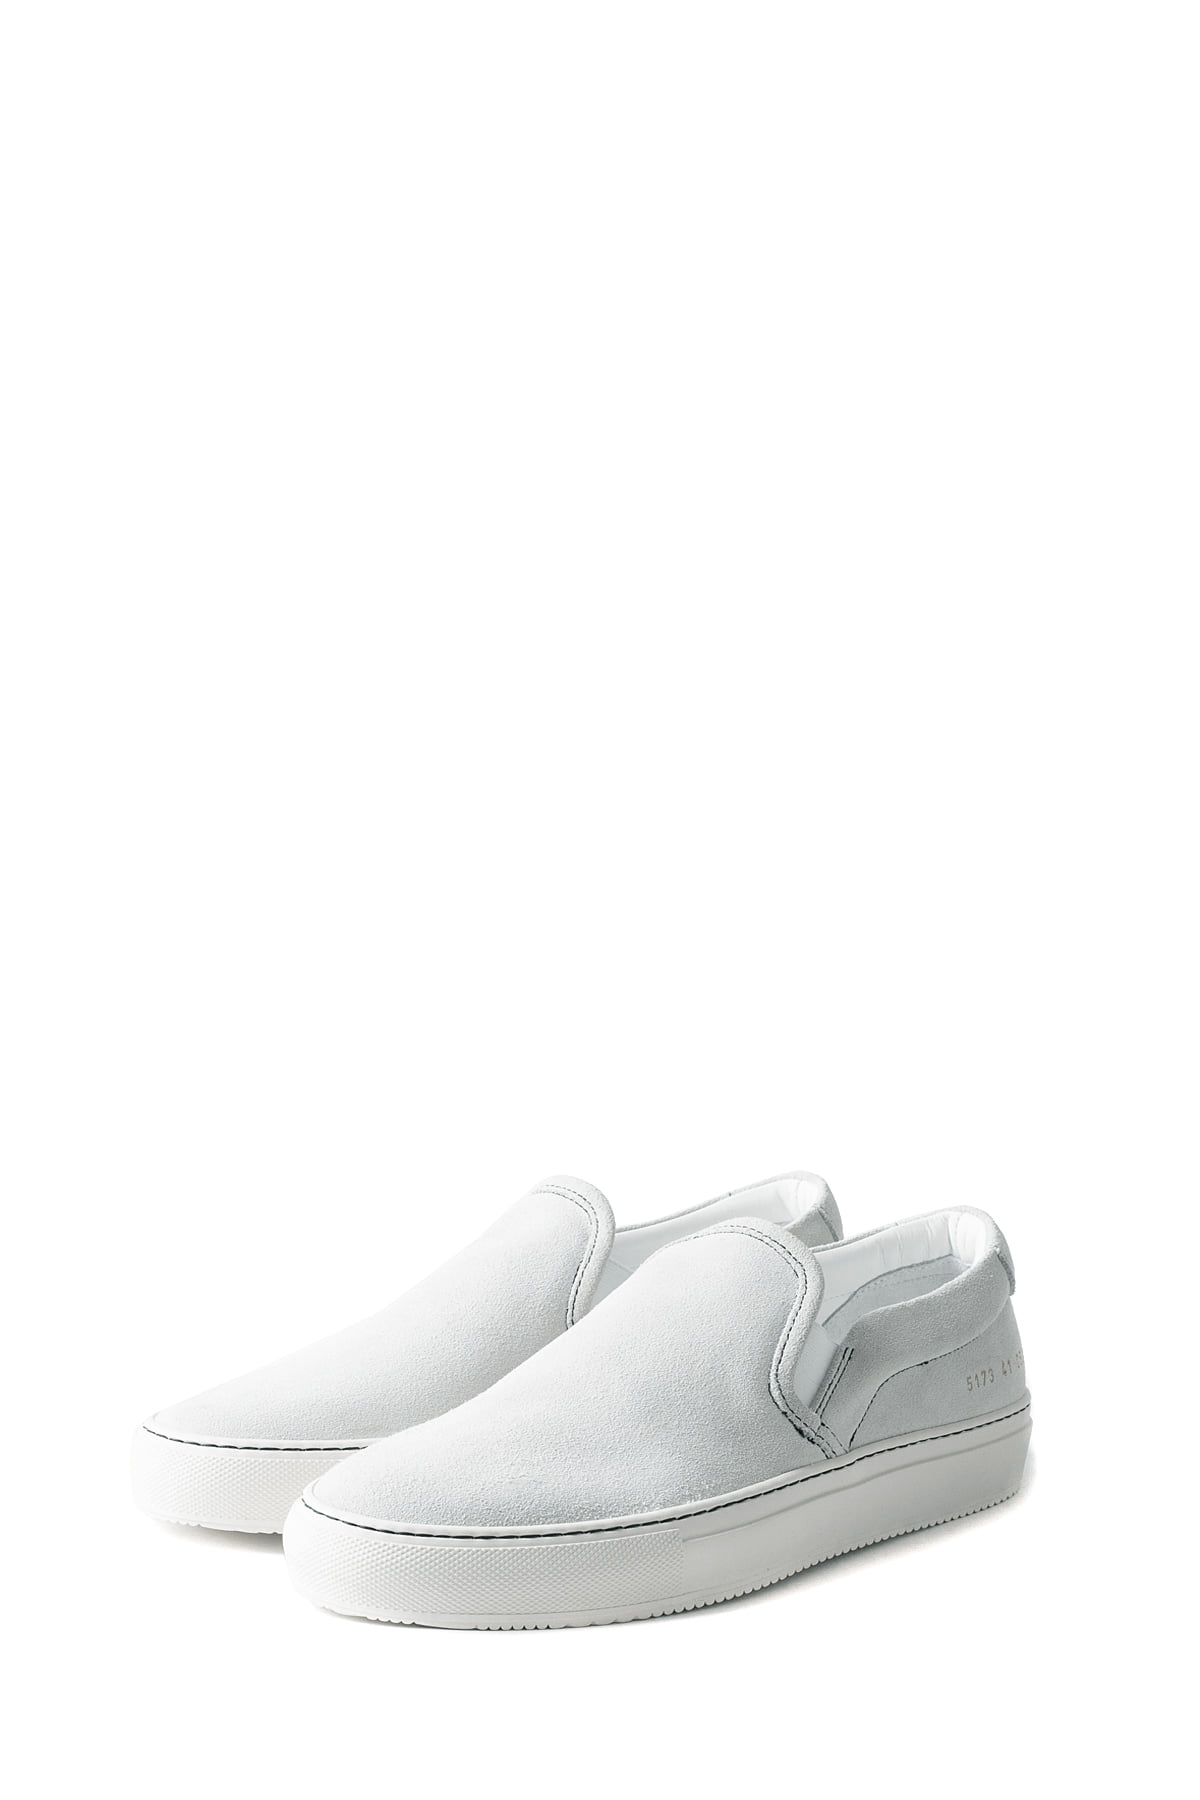 Common Projects : Slip On In Suede 5173 (White)